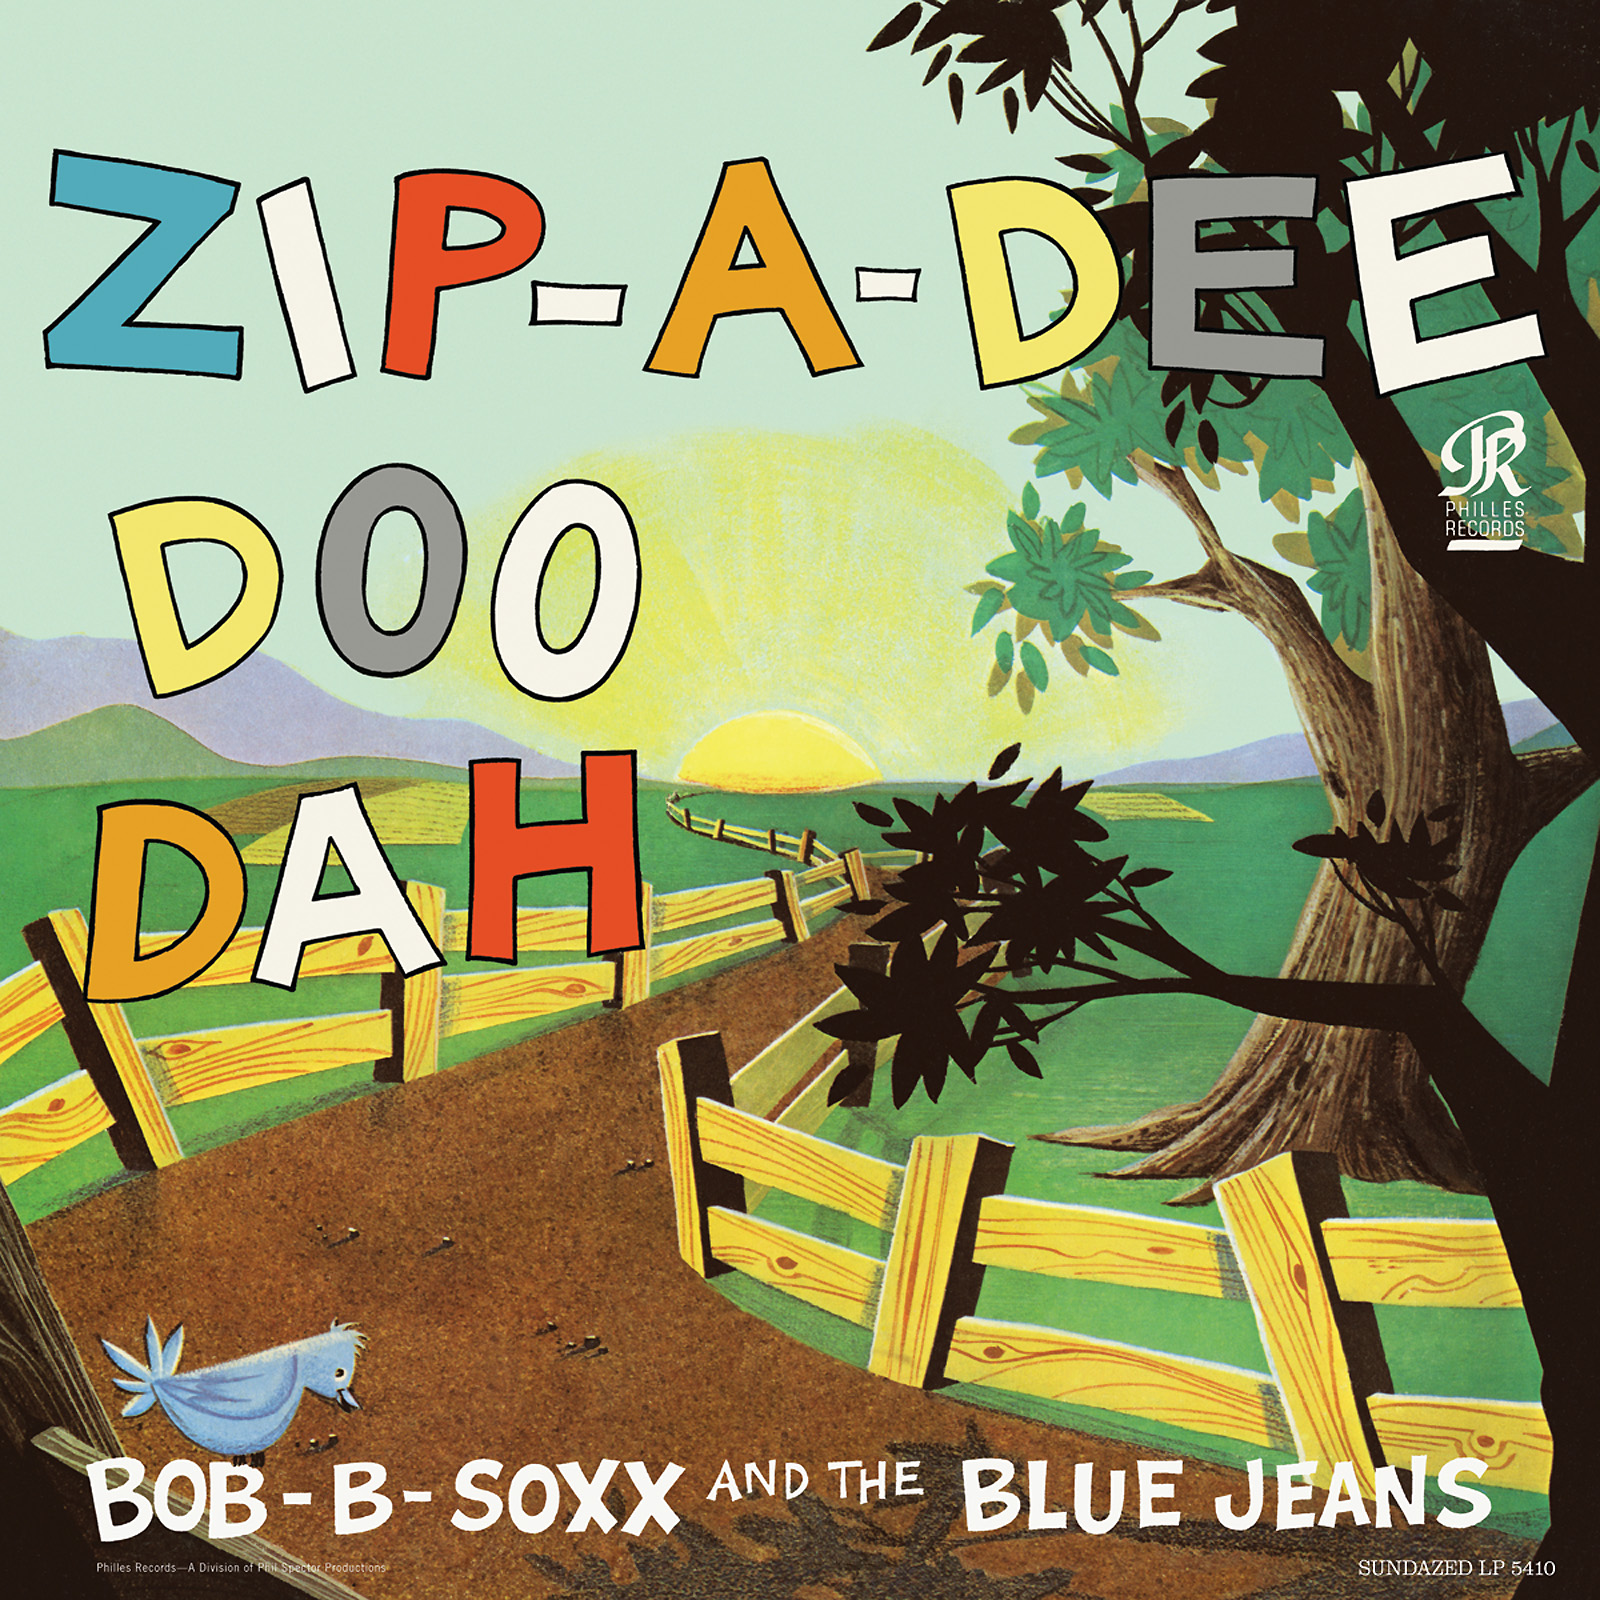 Bob B. Soxx and the Blue Jeans